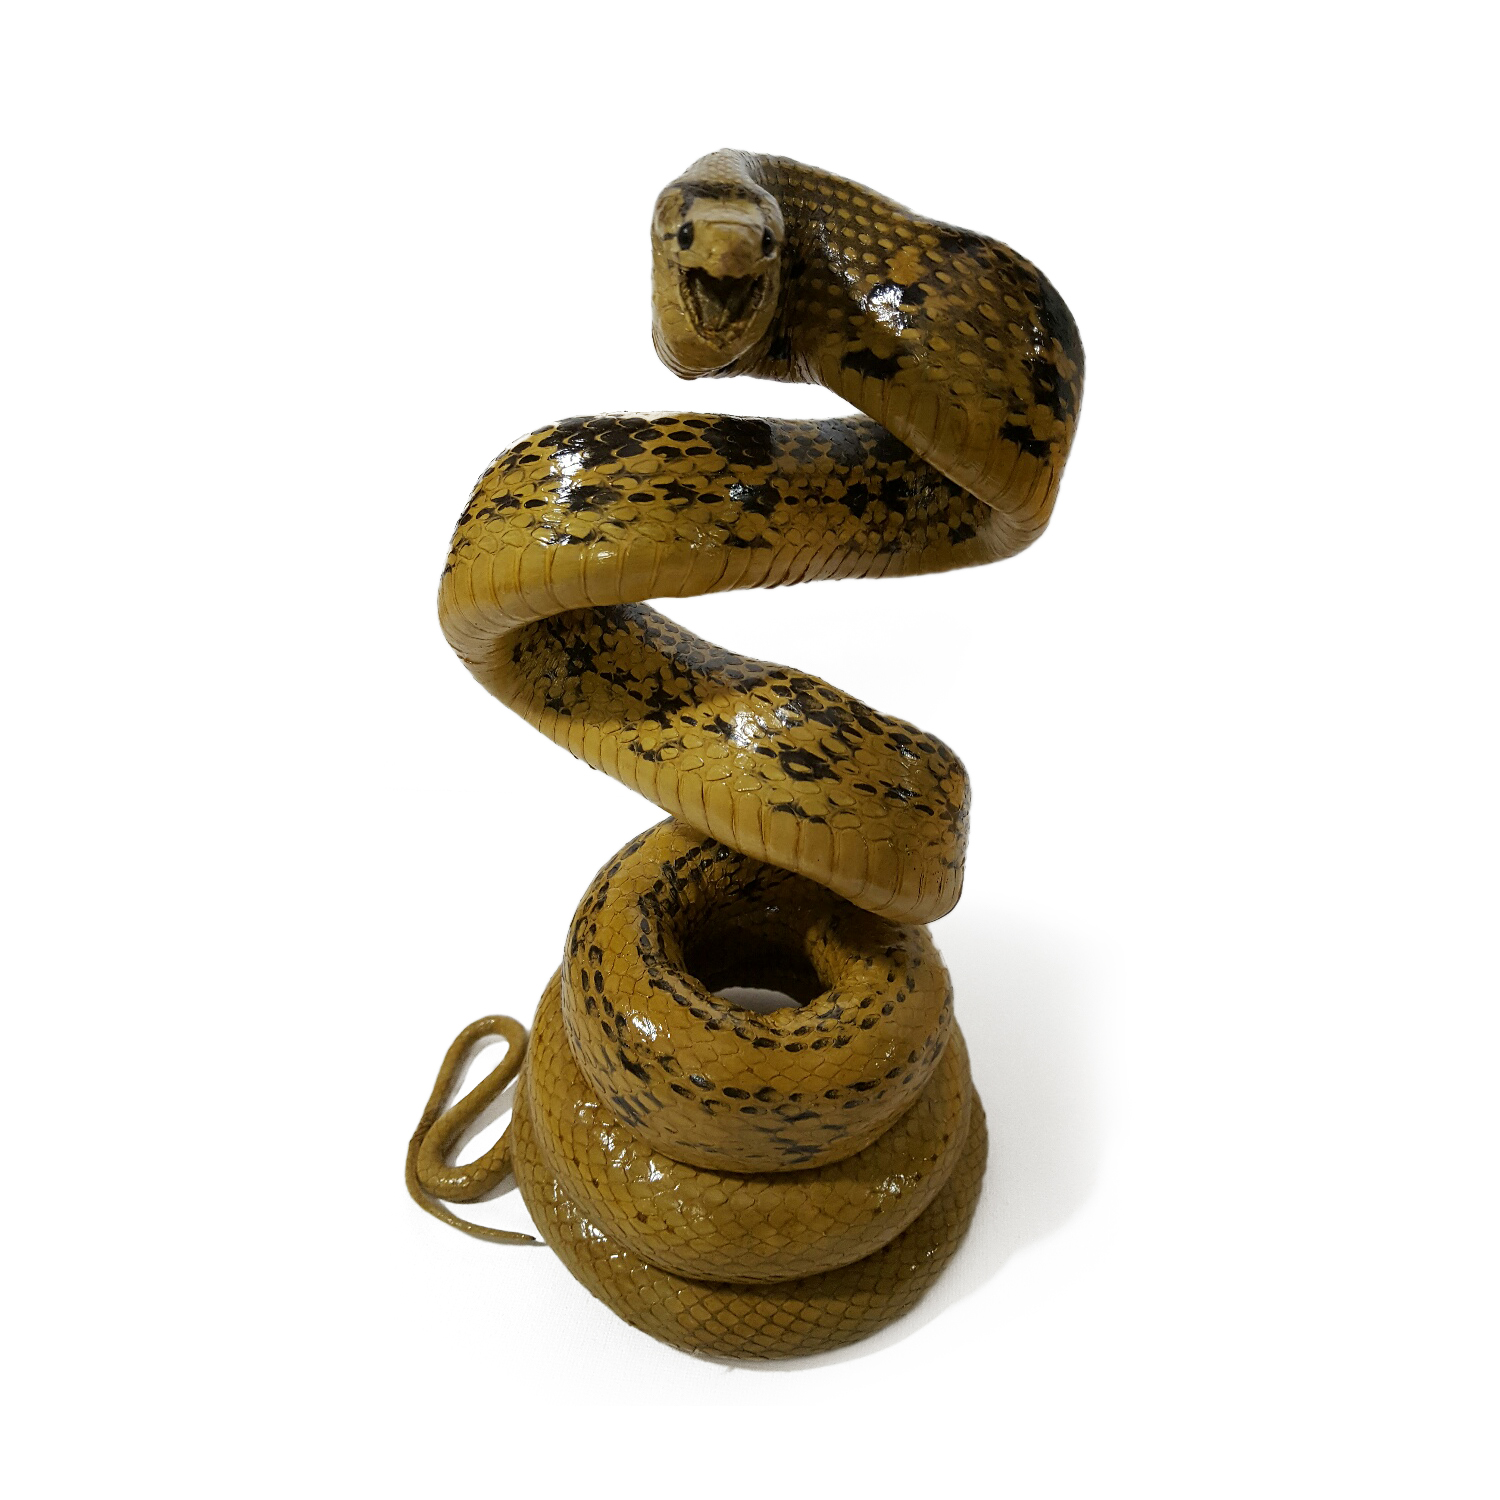 Snakeskins Copperhead Racer Snake Coiled Taxidermy Mount